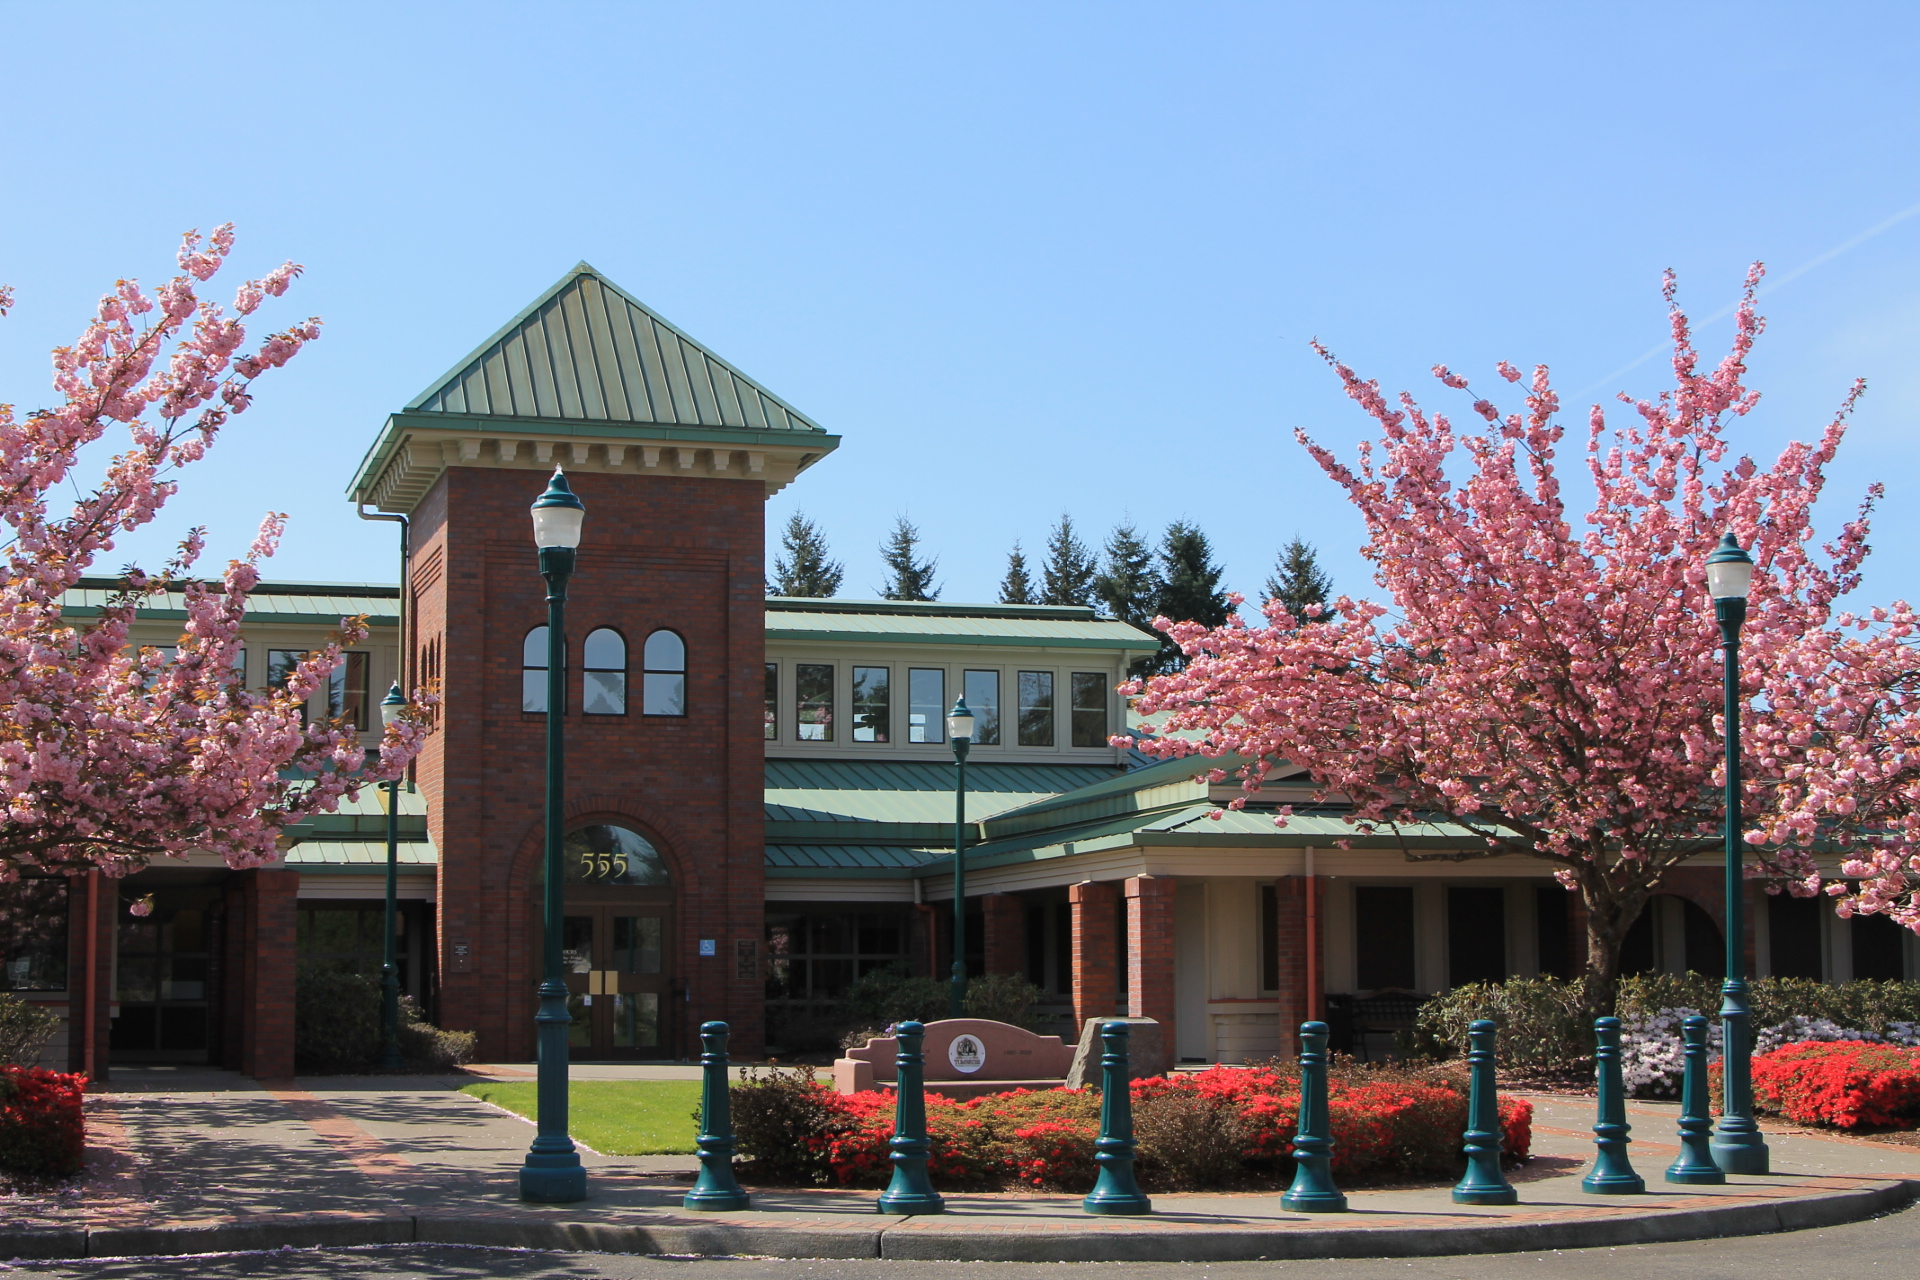 Annual Clean Up Drop Off Event At Tumwater City Hall